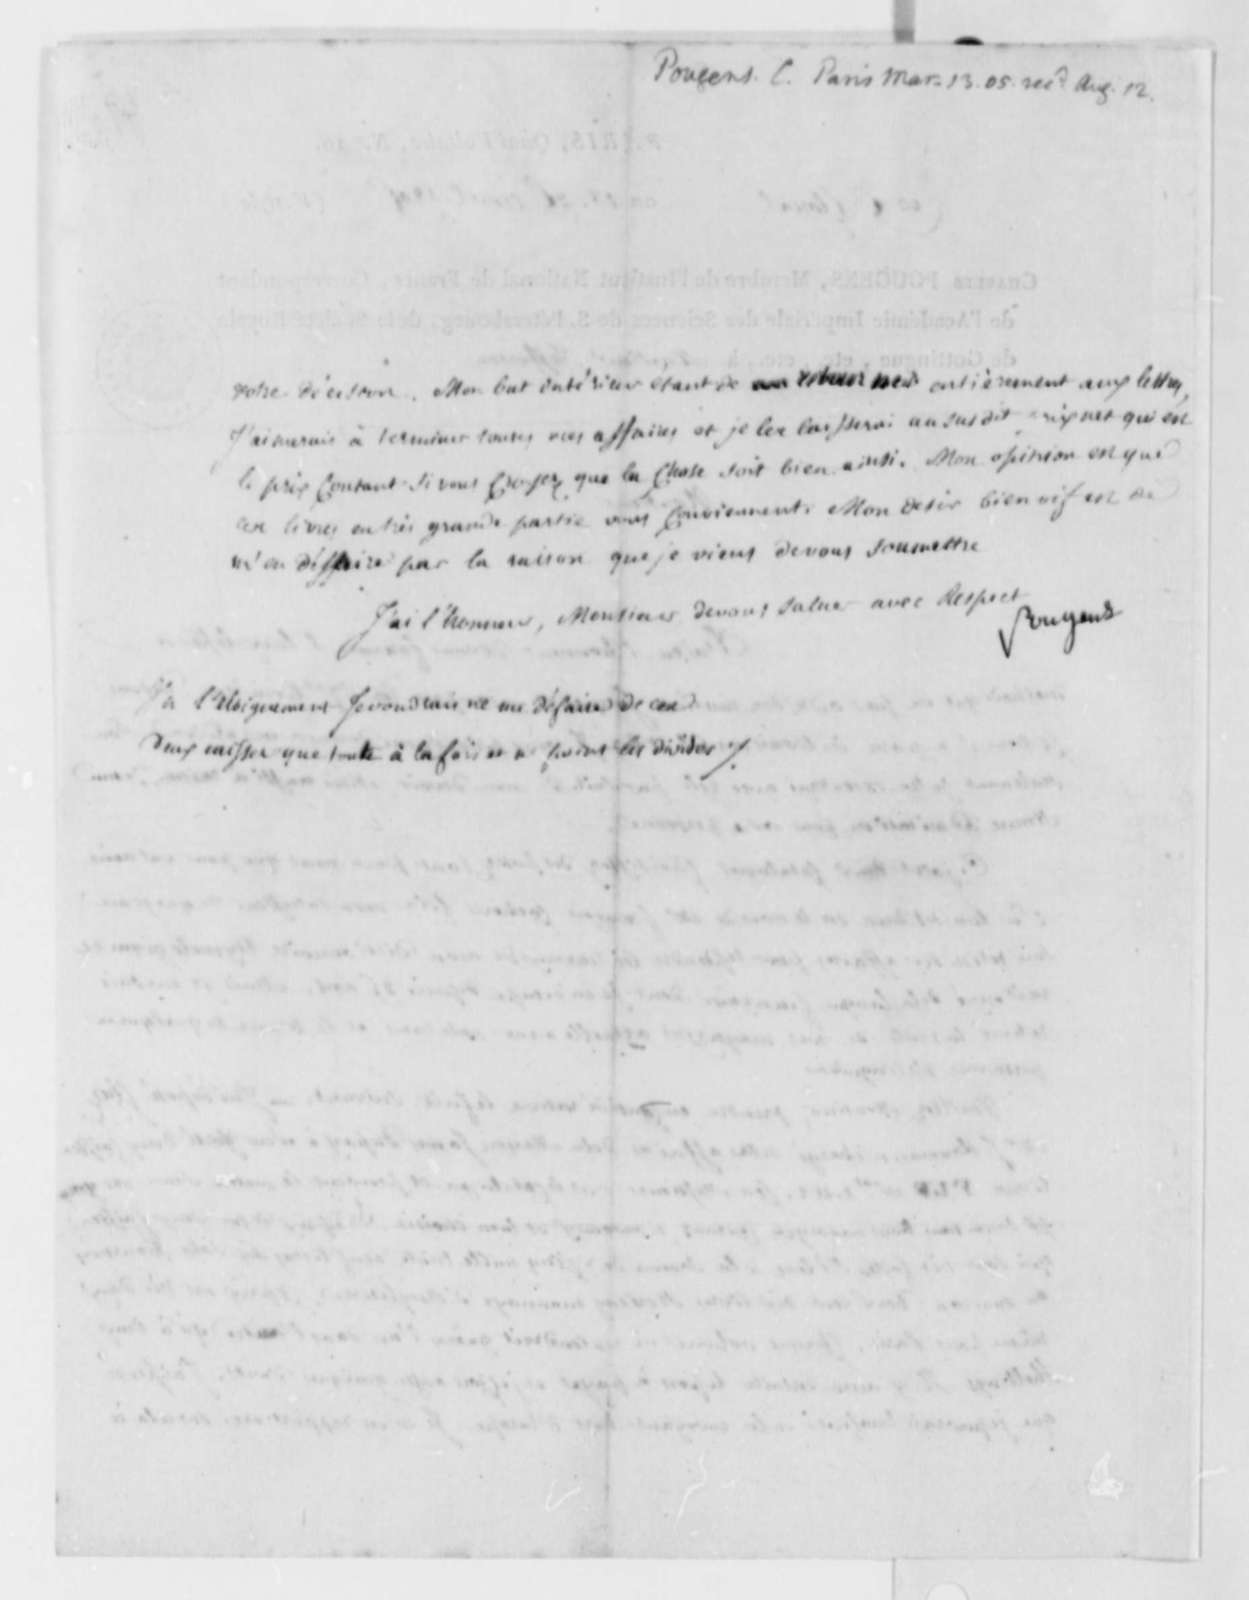 Charles de Pougens to Thomas Jefferson, April 29, 1805, in French